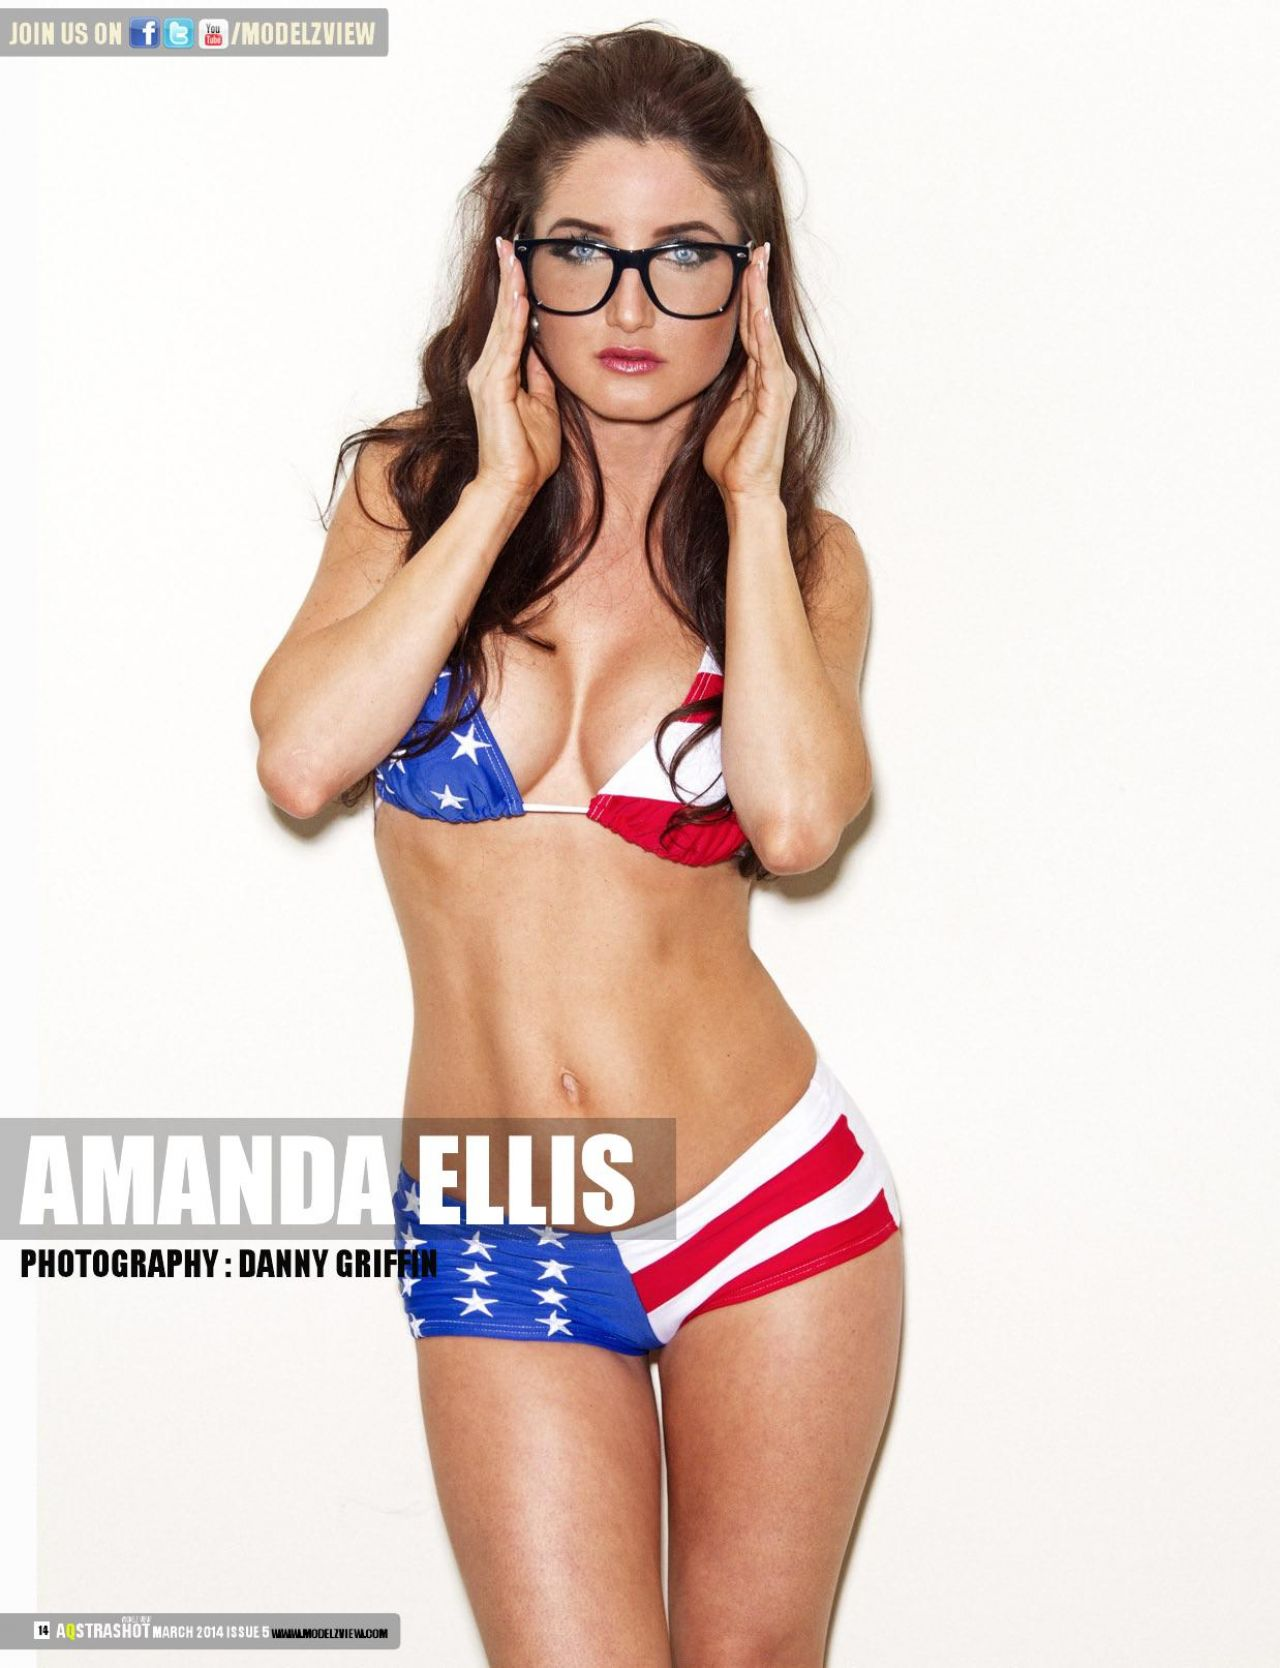 Amanda Ellis – Aqstrashot Magazine March 2014 Issue